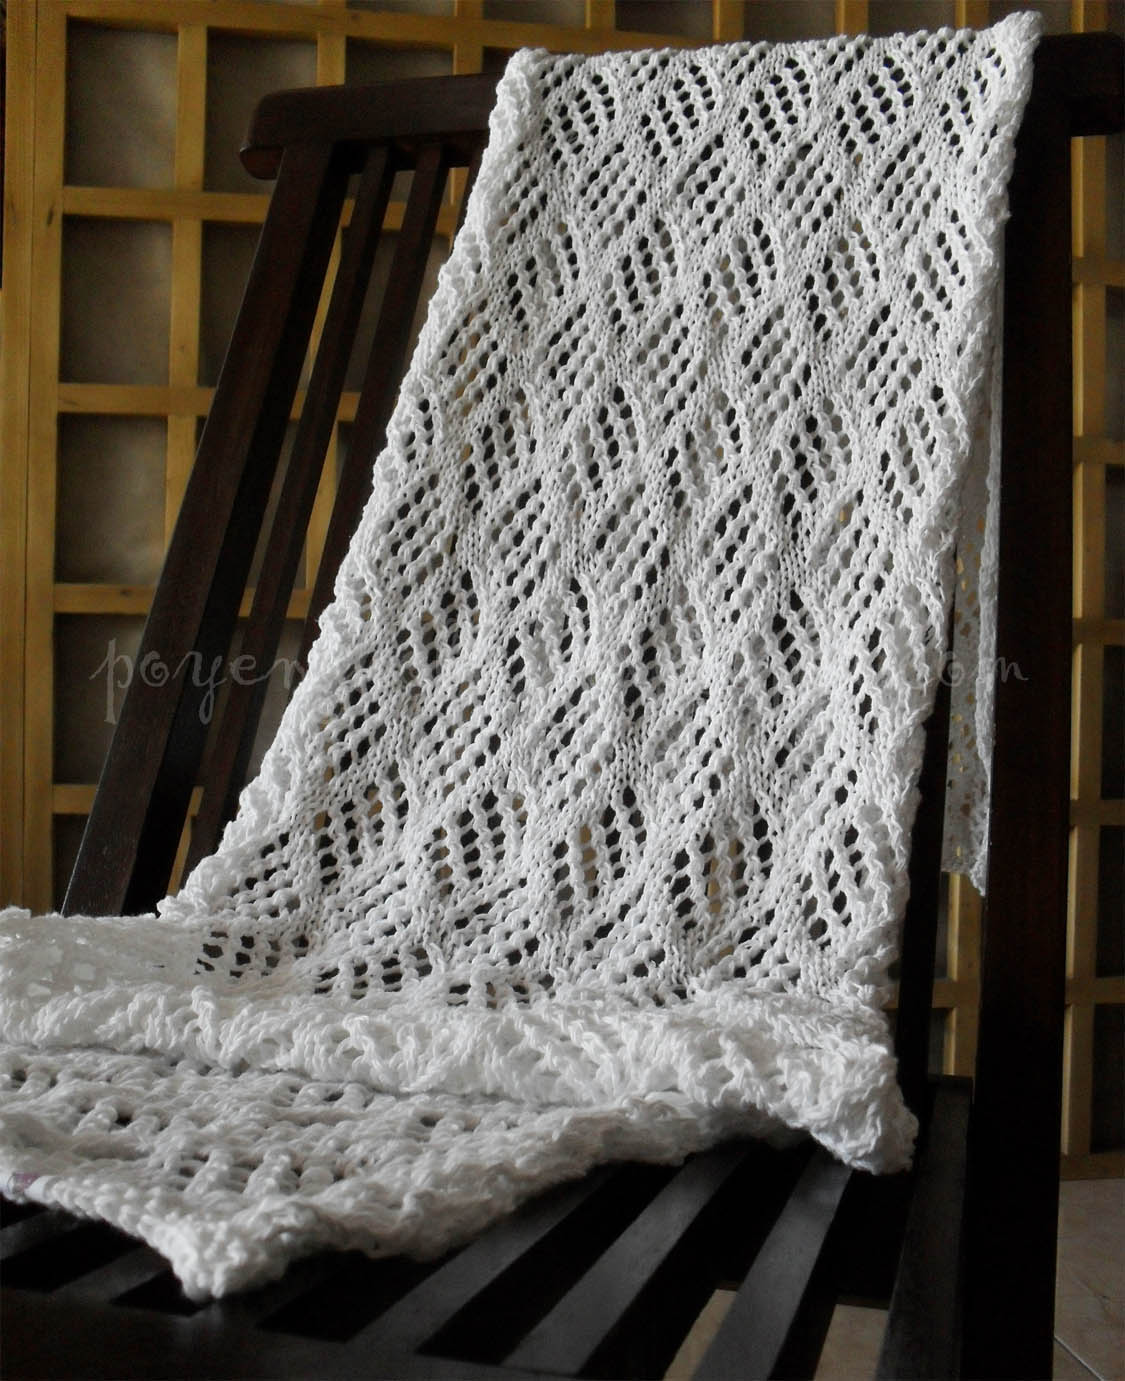 Knitting Lace Patterns Free : Free Knit Wrap Pattern Patterns Gallery